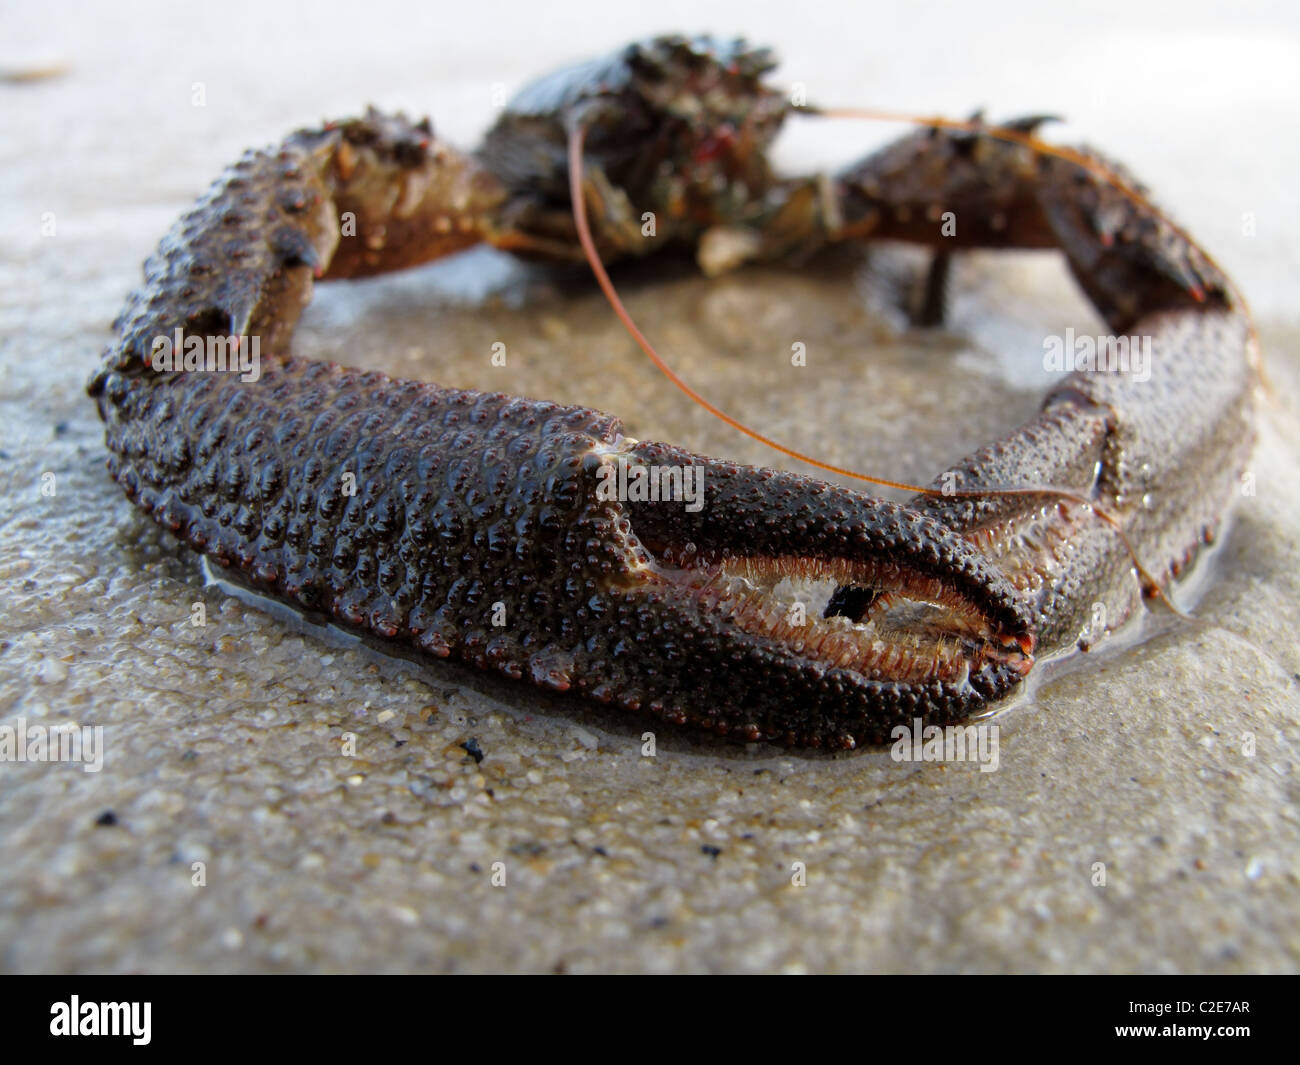 Spiny Squat Lobster (Galathea strigosa) - Stock Image